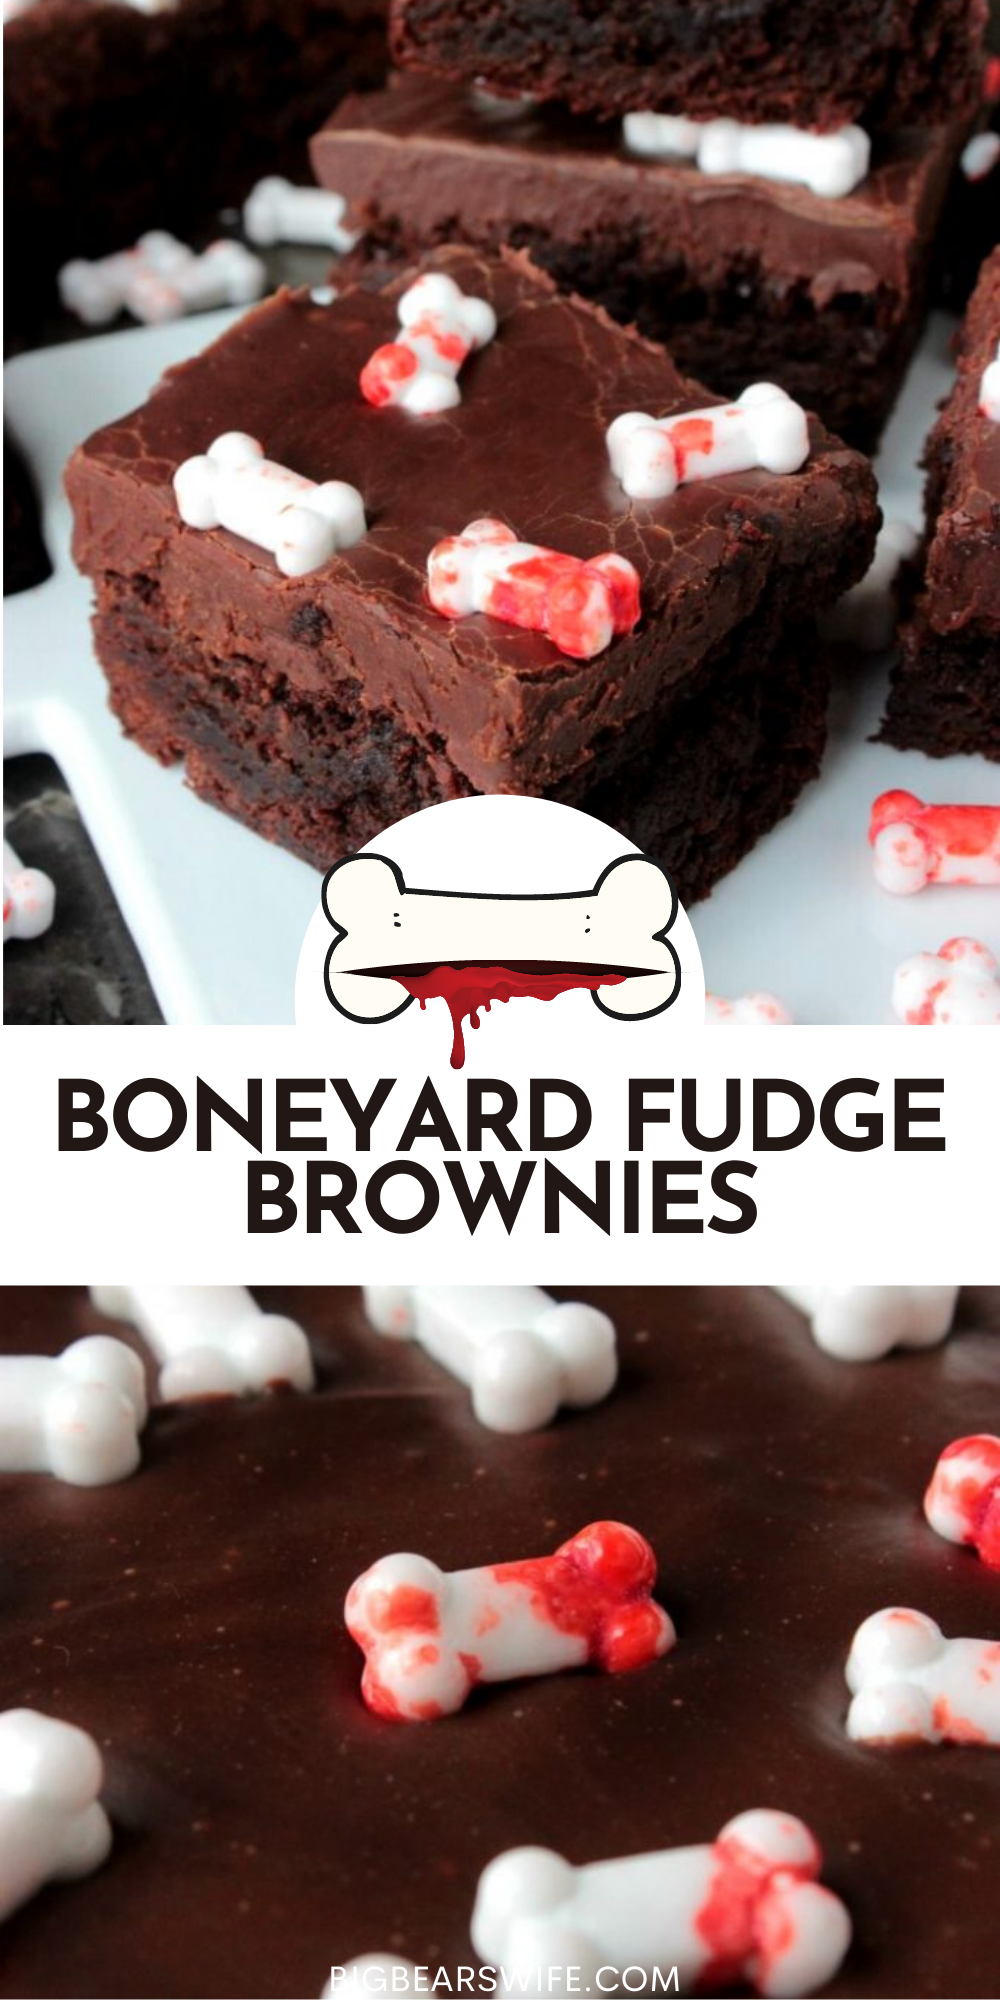 These Boneyard Fudge Brownies are easy to make! You're going to love the top fudge layer and the fudge brownie bottoms! The candy Bones on top are perfect for Halloween! A Super Easy Halloween Treat Recipe! Halloween Brownies are so fun to make and these are great for kids and adults alike! These brownies also have a fudge topping!